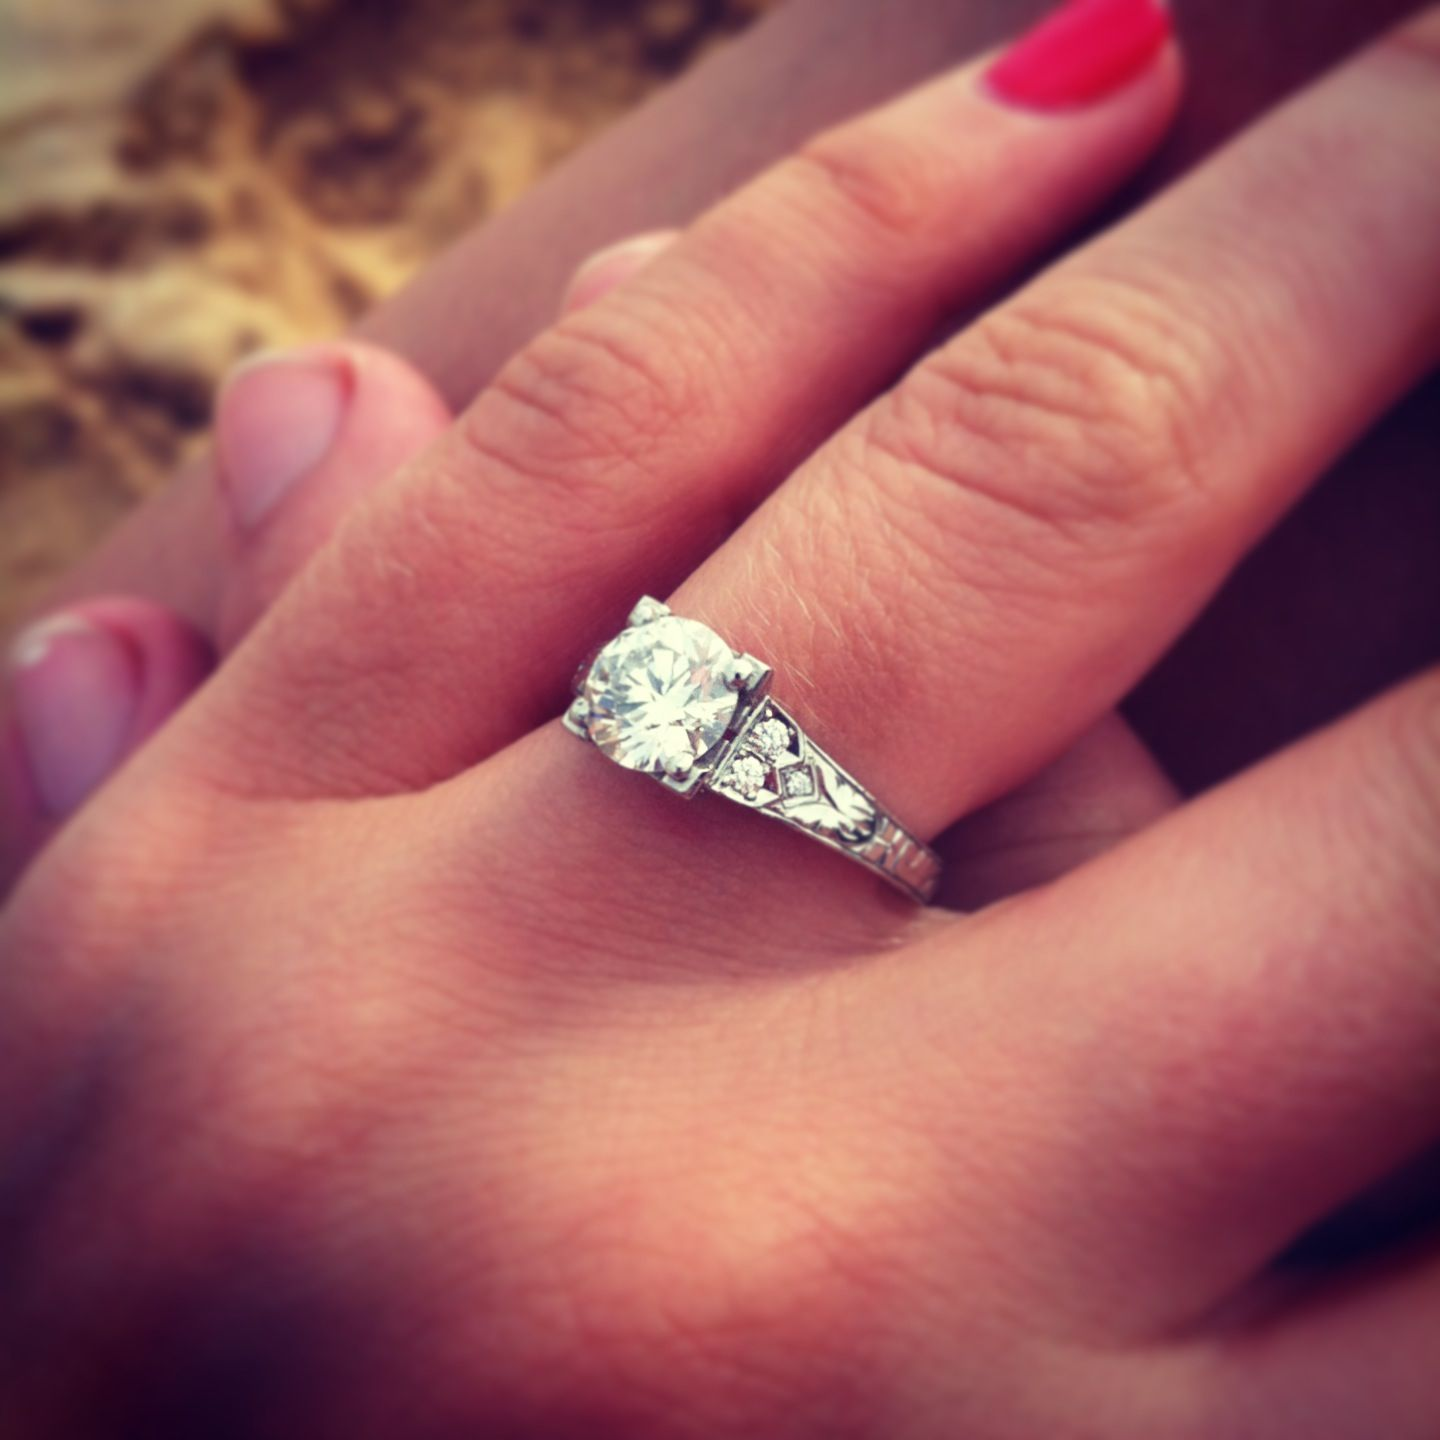 17 best Jewelry! images on Pinterest | Rings, Engagements and Weddings